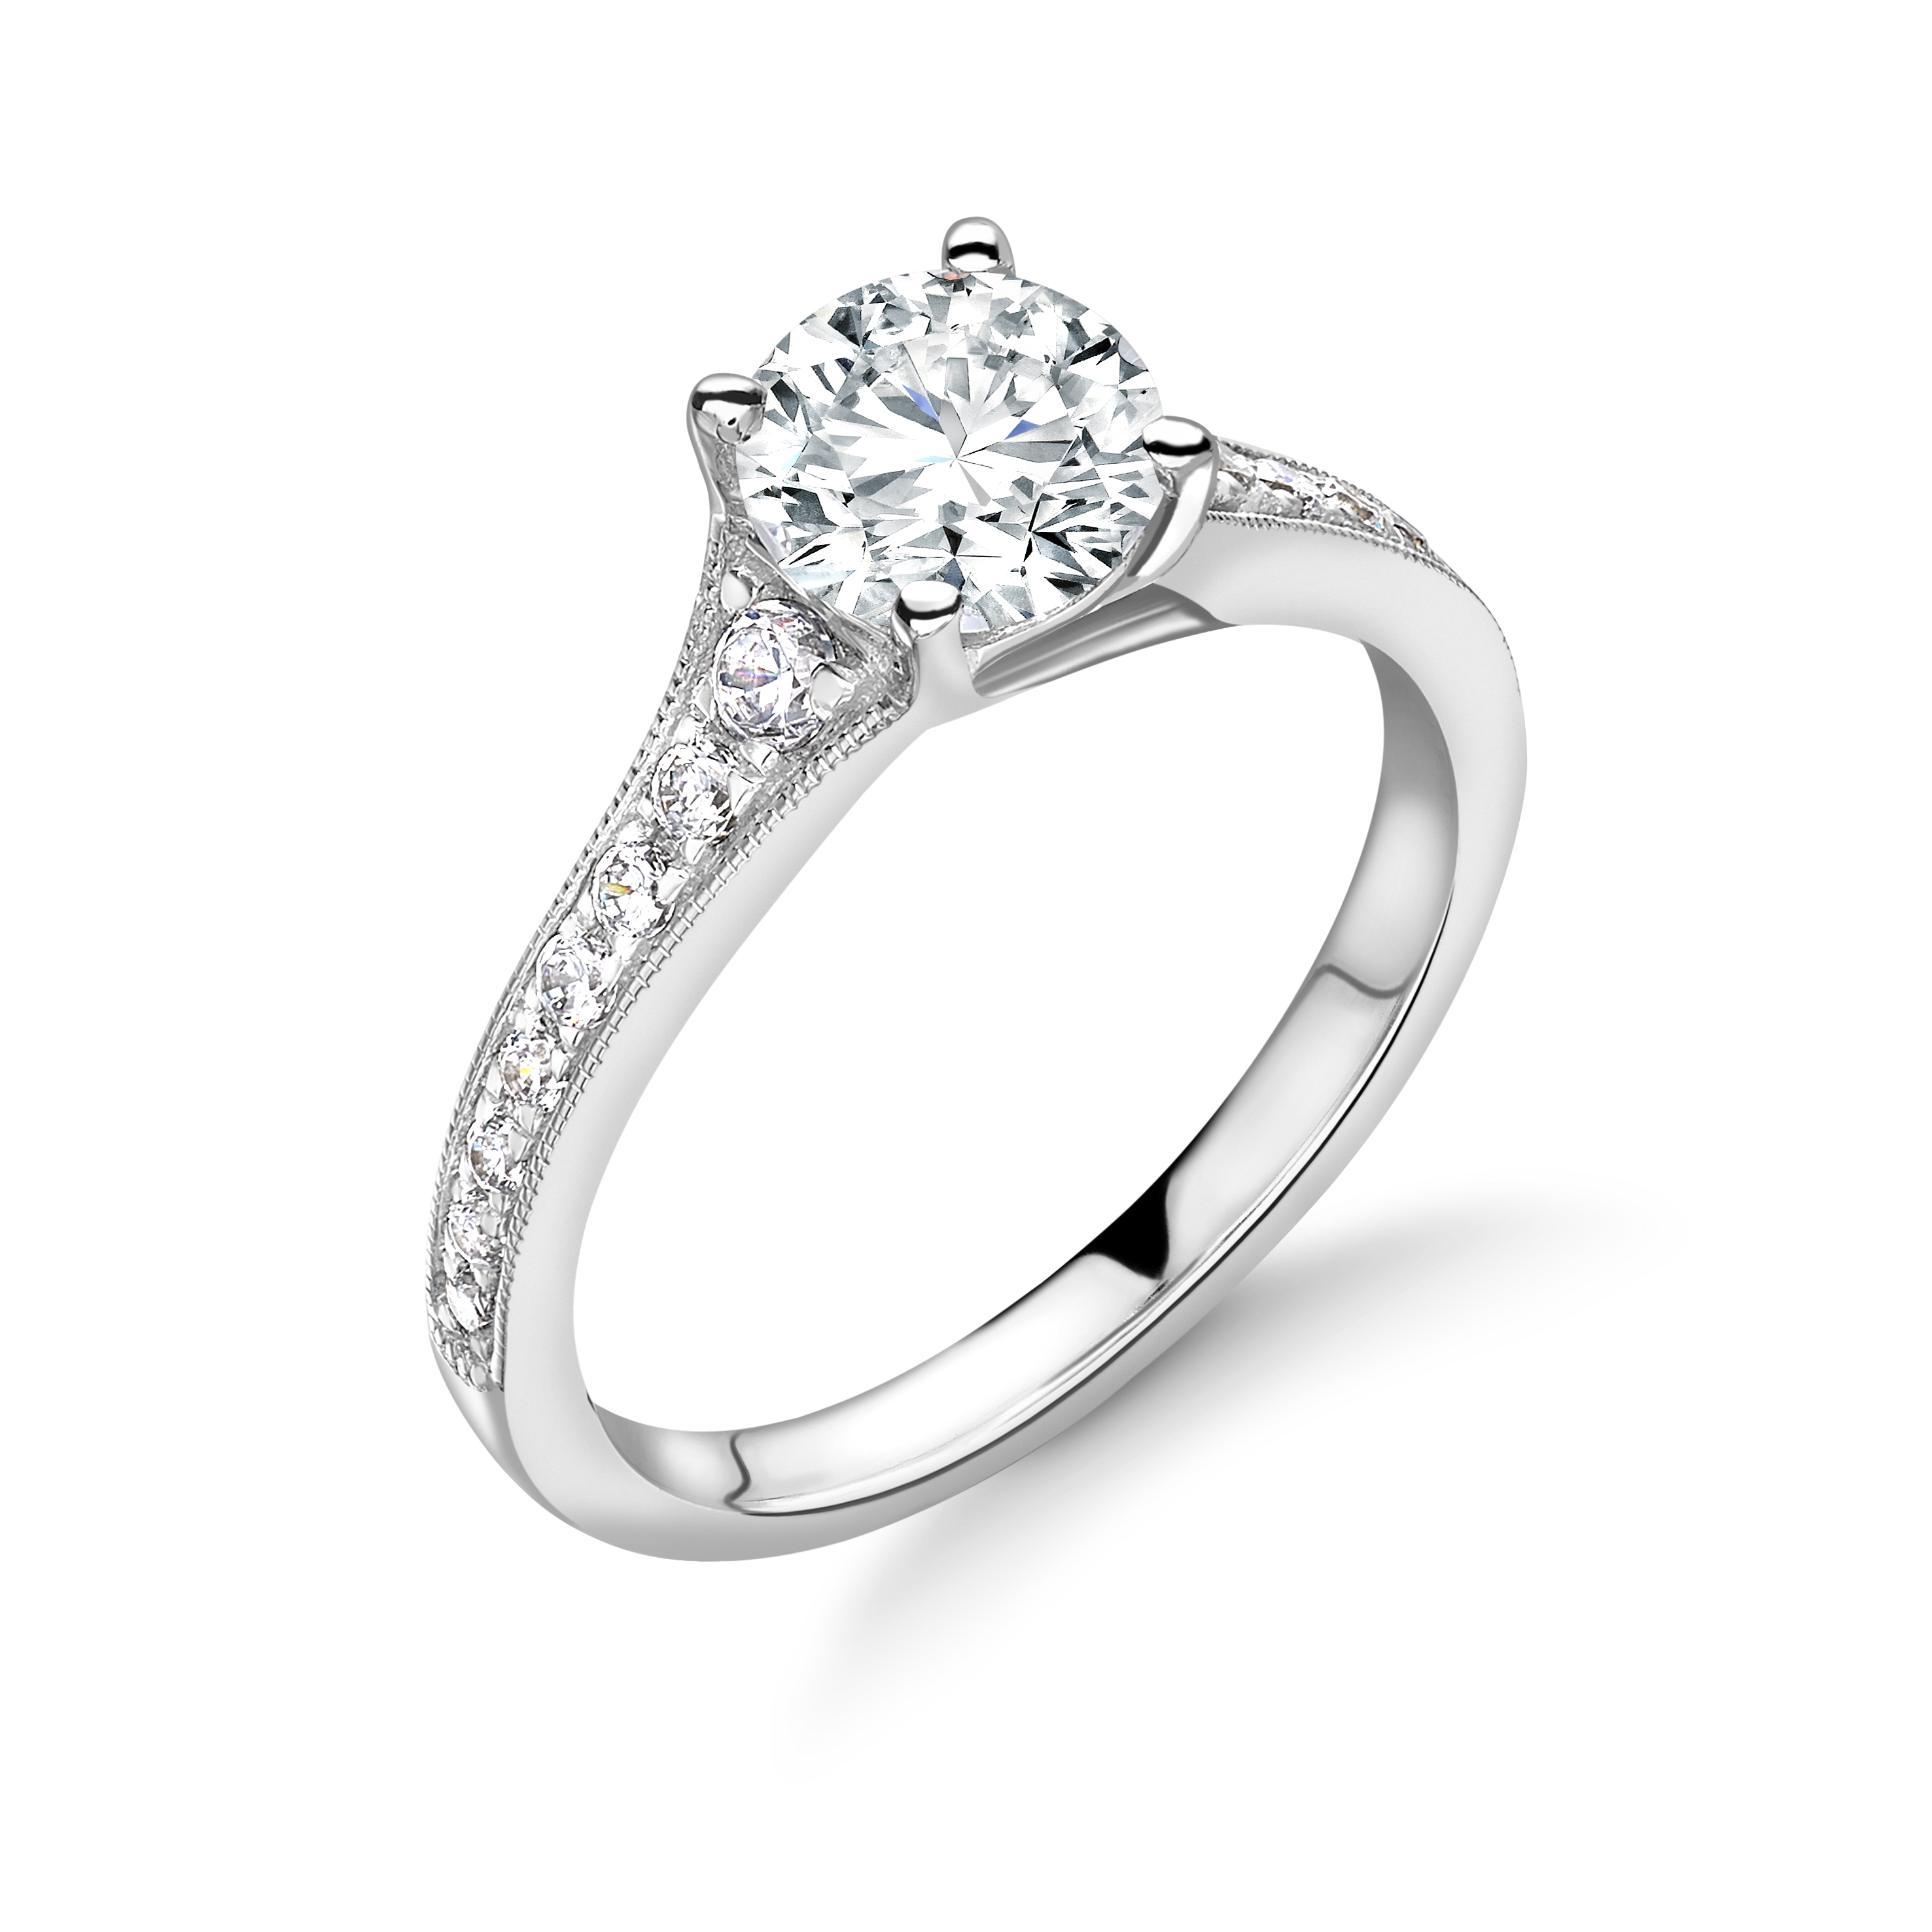 Tapering Up Shoulder with Milligrain Edge Diamond Engagement Ring